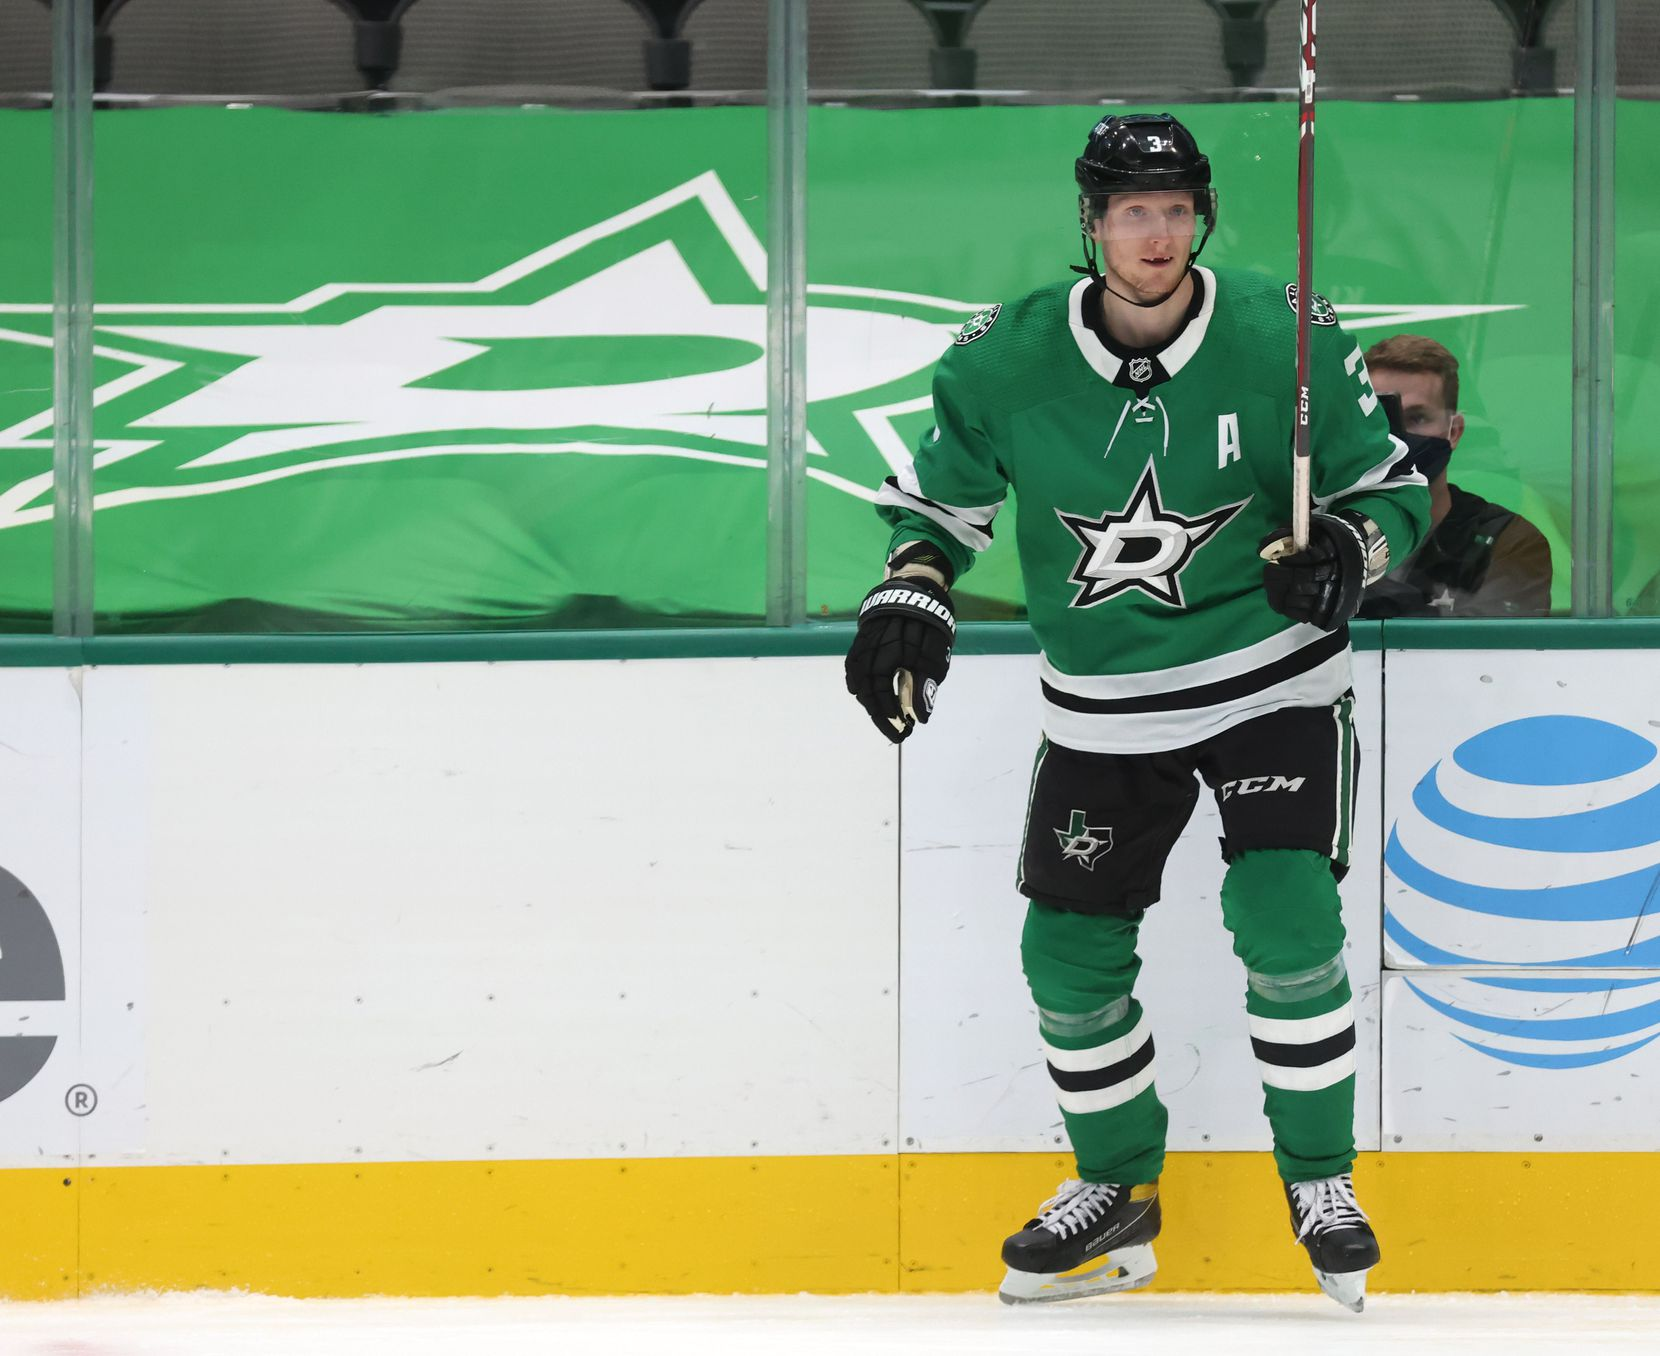 Dallas Stars defenseman John Klingberg (3) in a game against the Detroit Red Wings during the second period of play at American Airlines Center on Tuesday, January 26, 2021in Dallas. (Vernon Bryant/The Dallas Morning News)